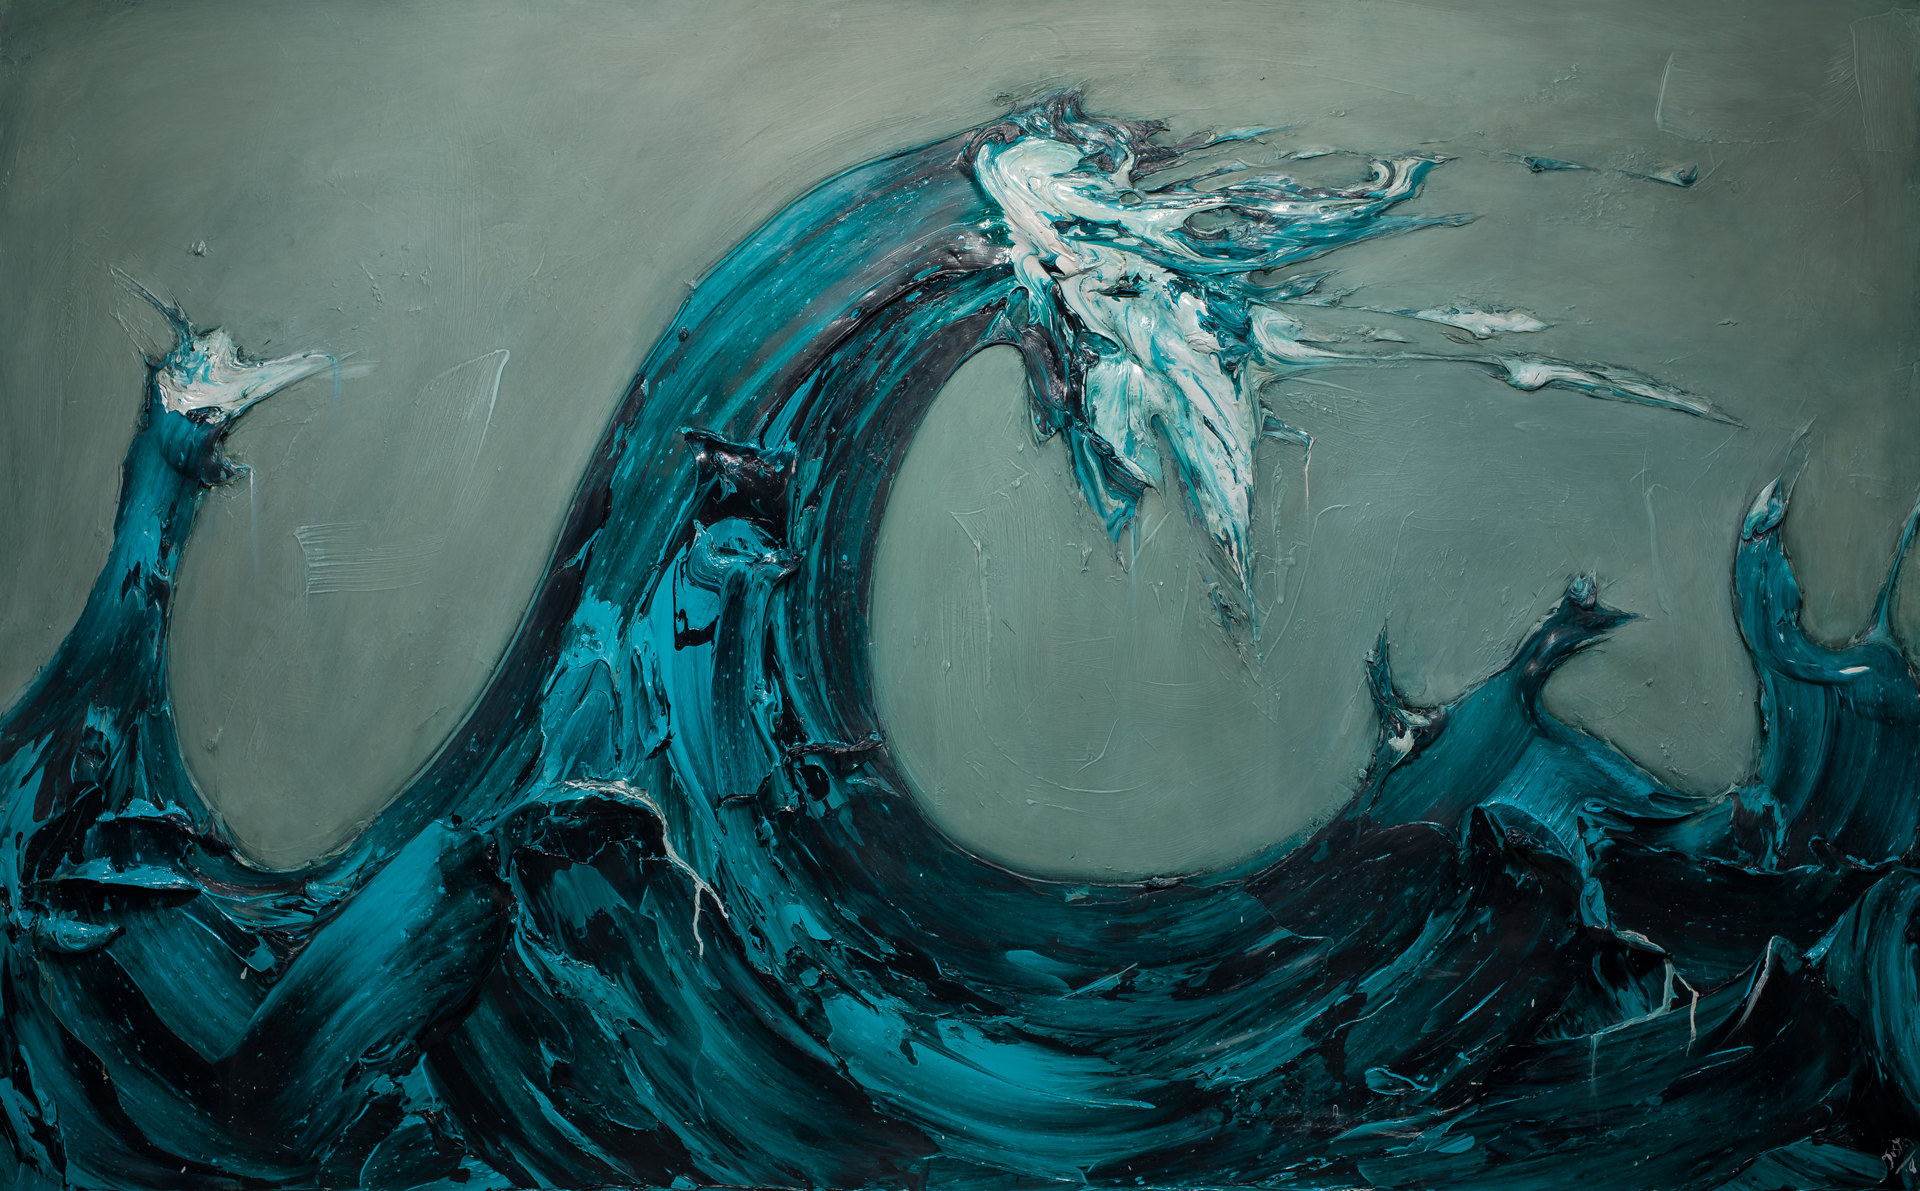 WAVES WV96x60-2018-304 by JUSTIN GAFFREY